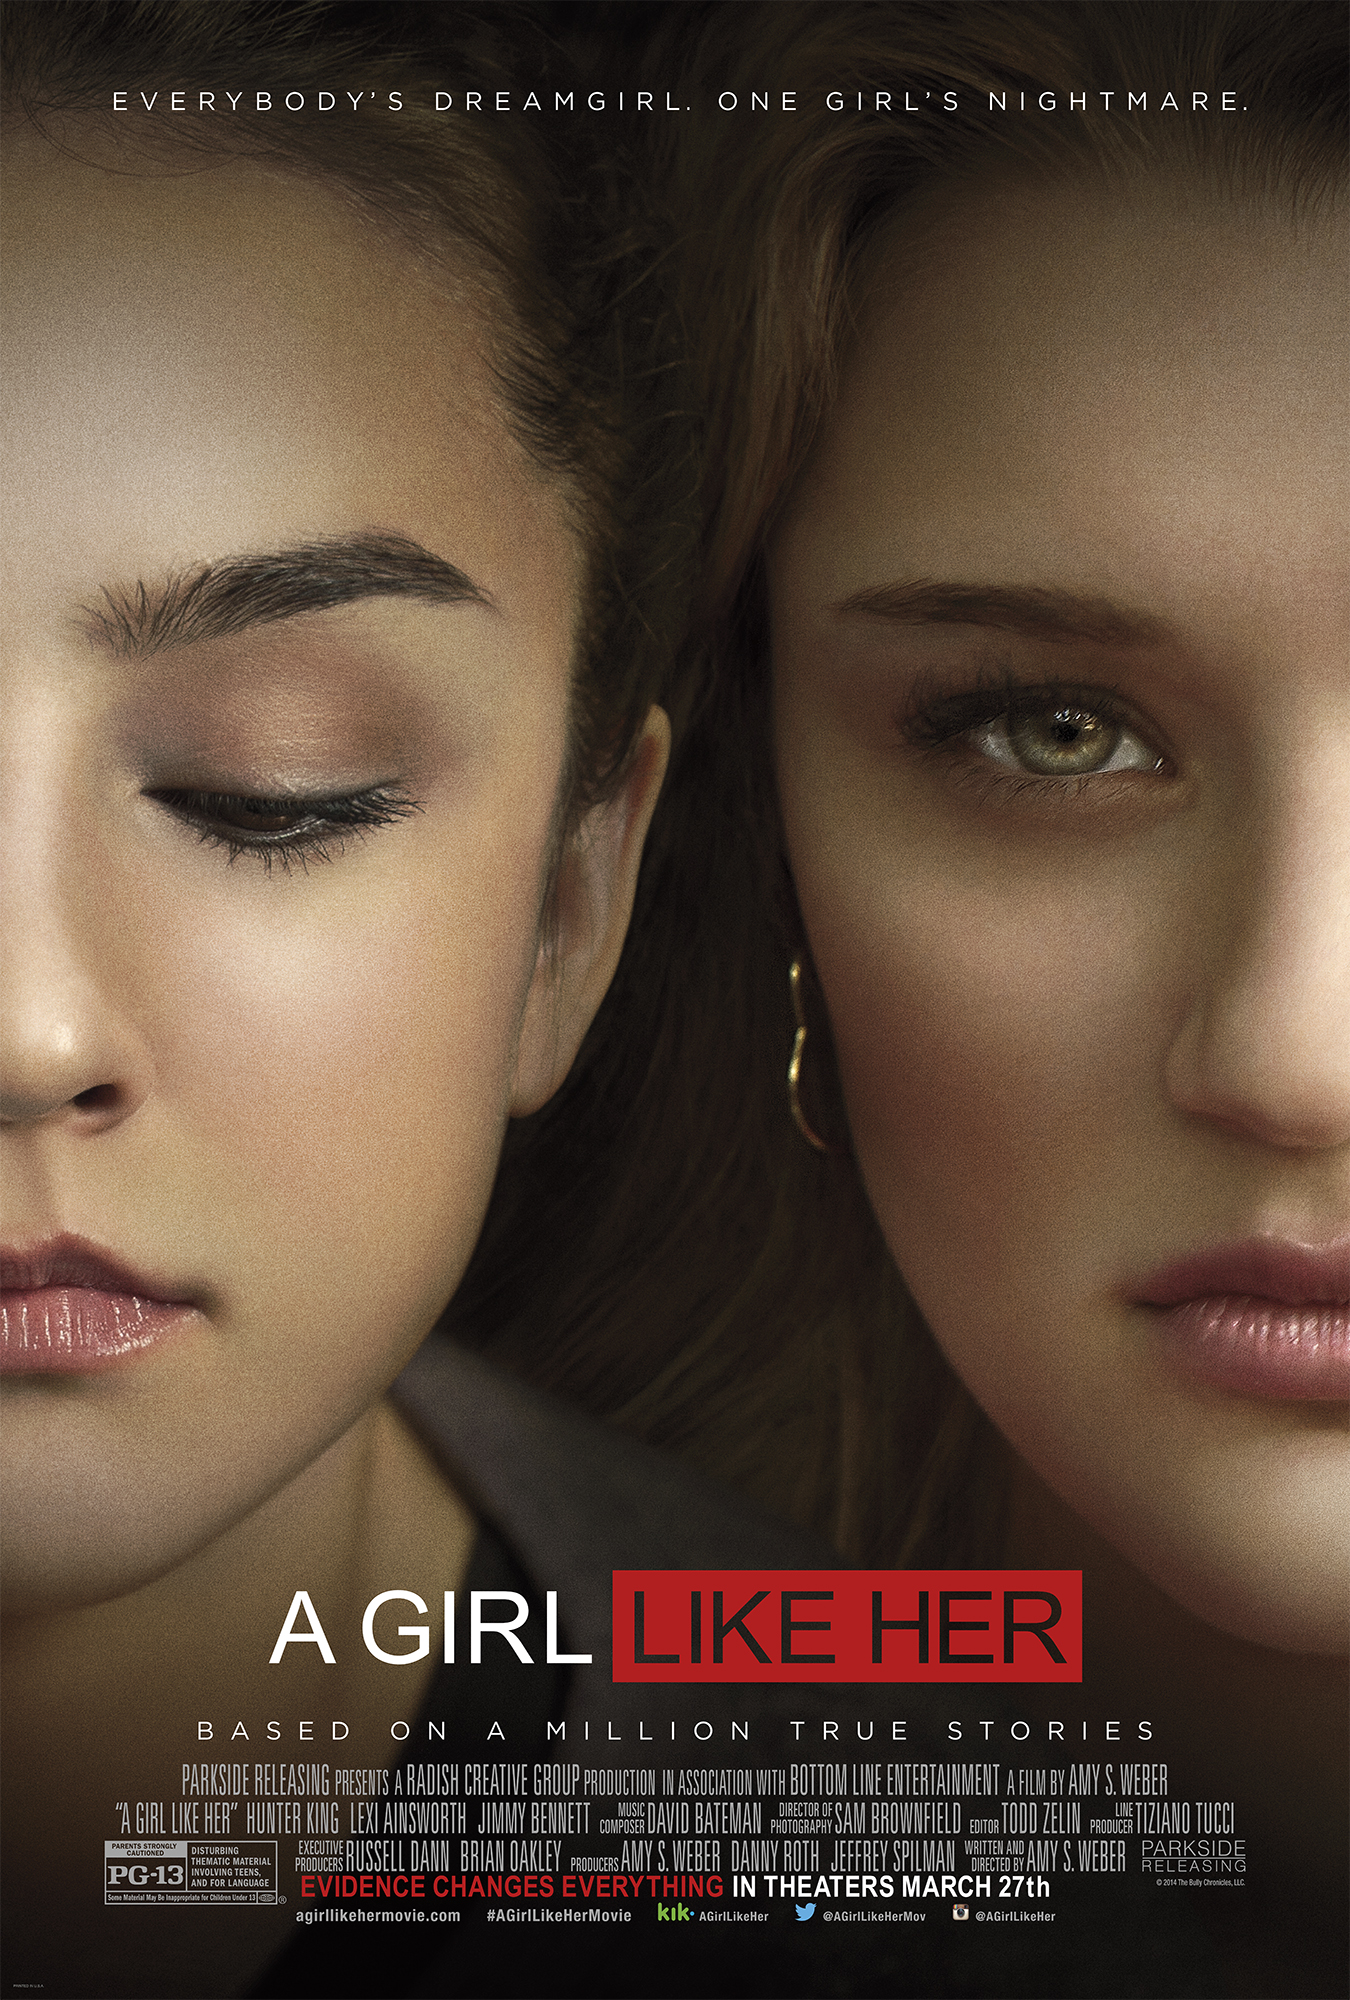 A Girl Like Her Is a Movie About Bullying….Opens in Theaters March 27th